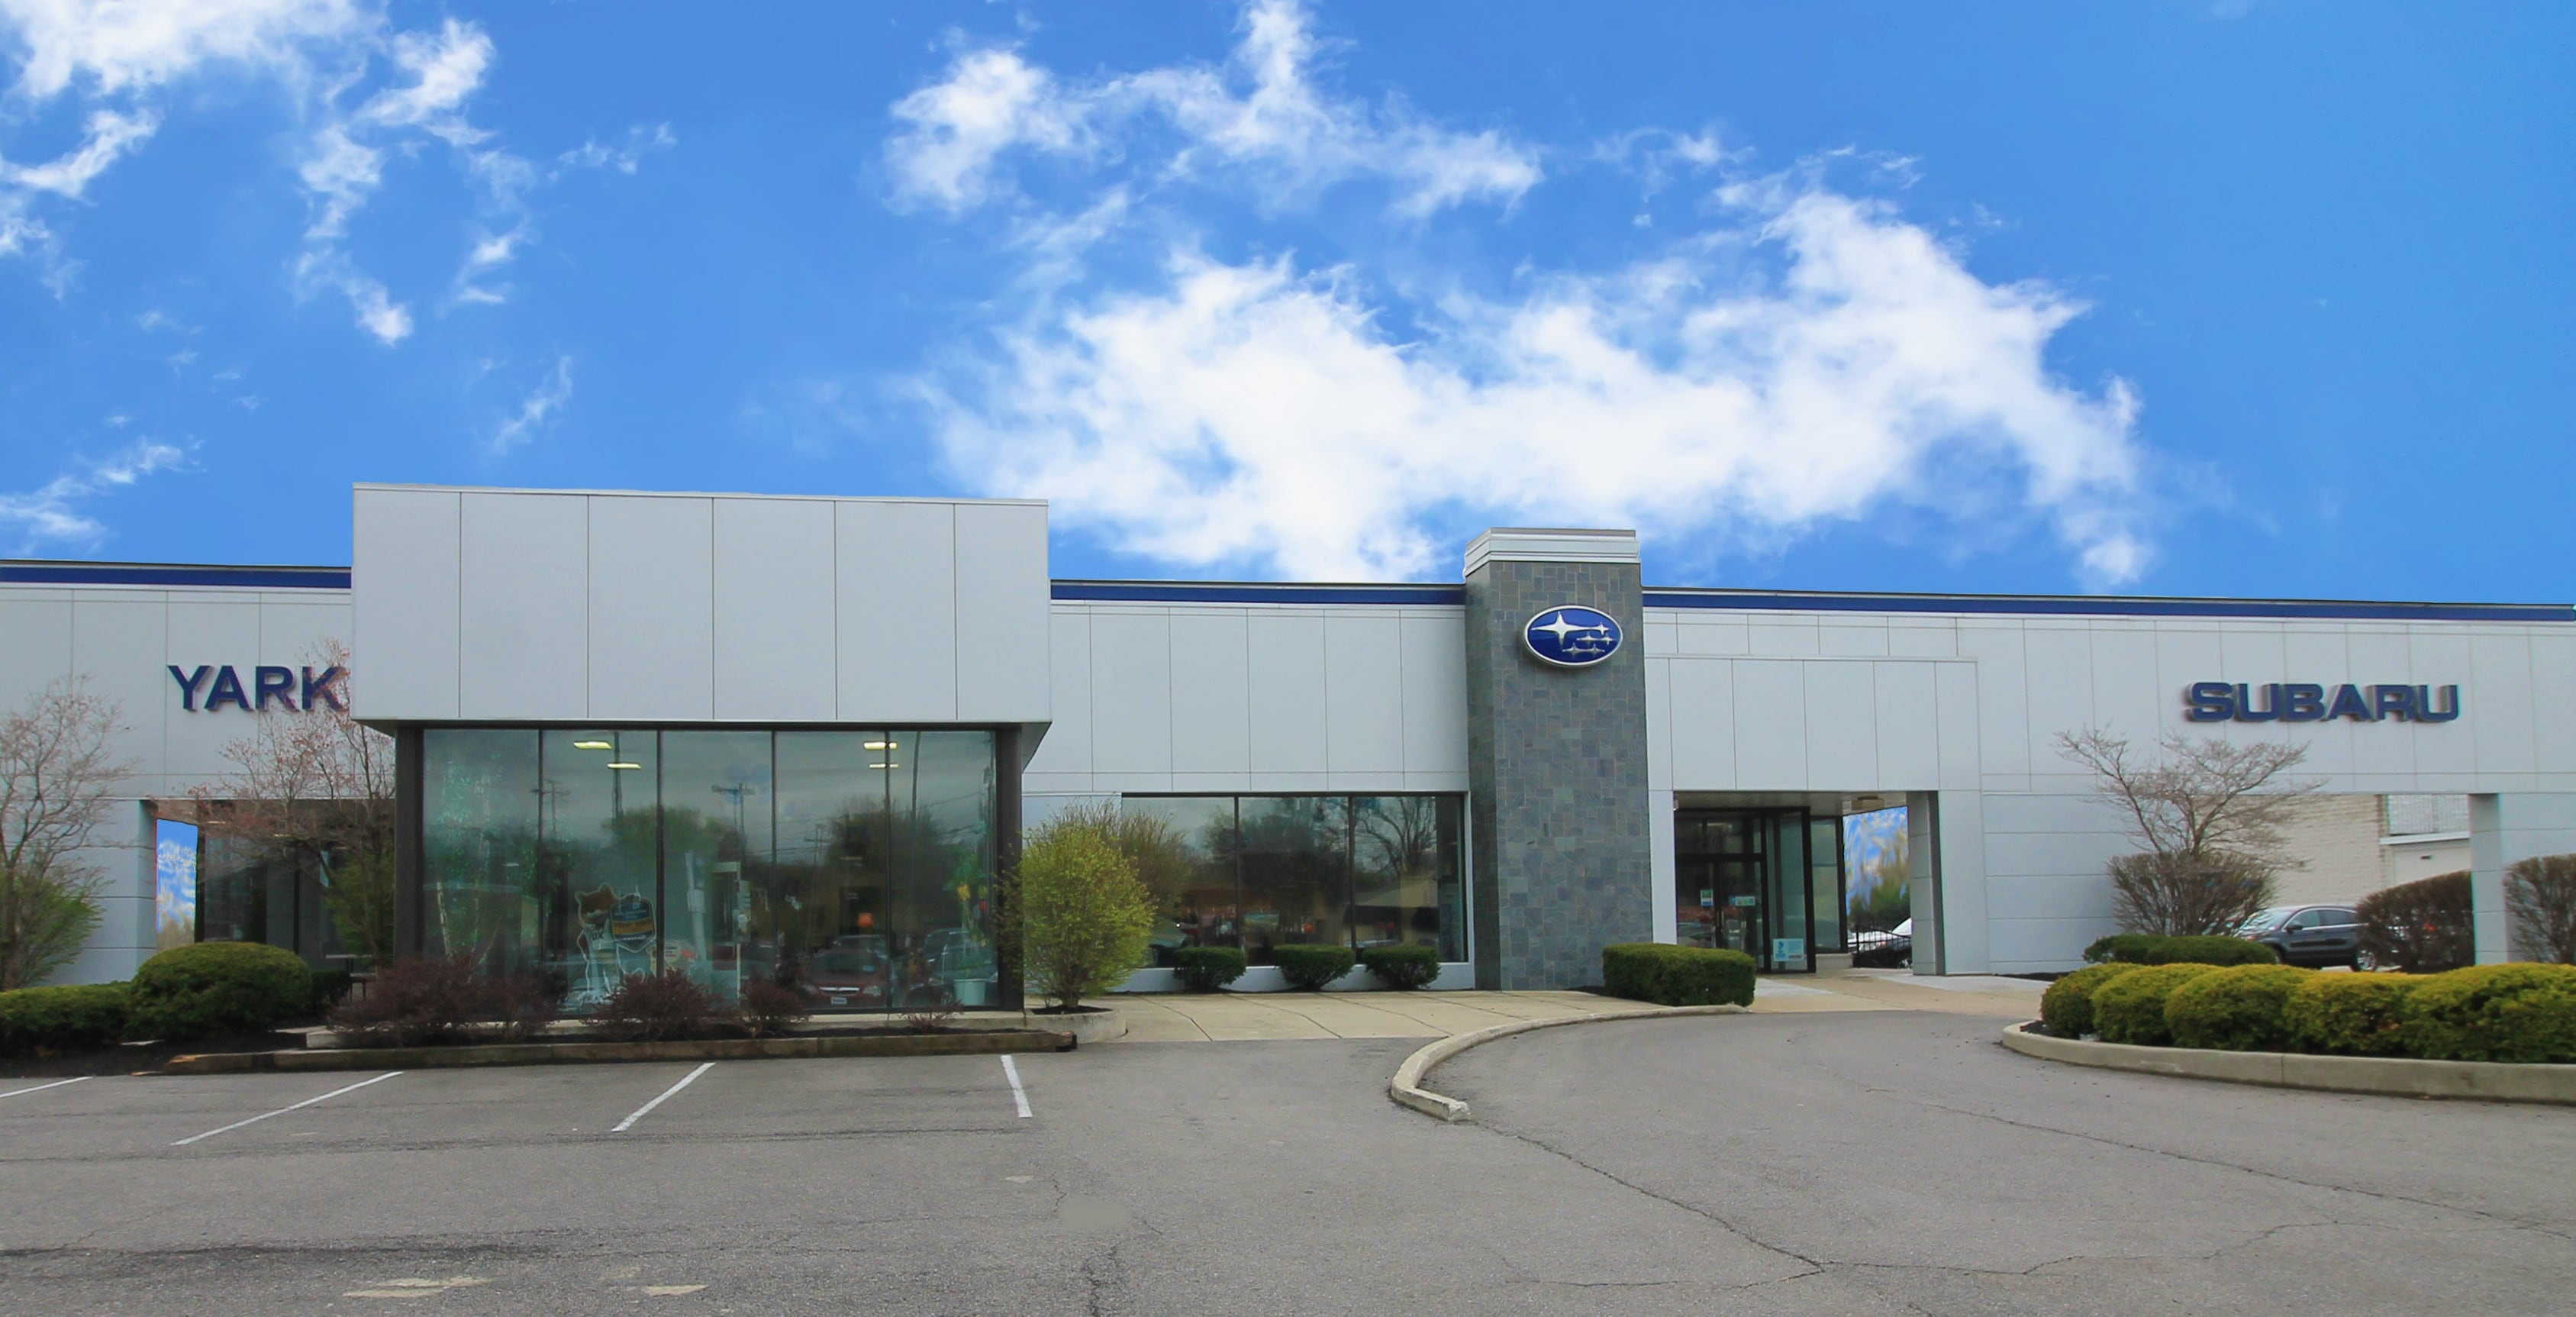 yark subaru subaru dealership in toledo oh subaru near me. Black Bedroom Furniture Sets. Home Design Ideas